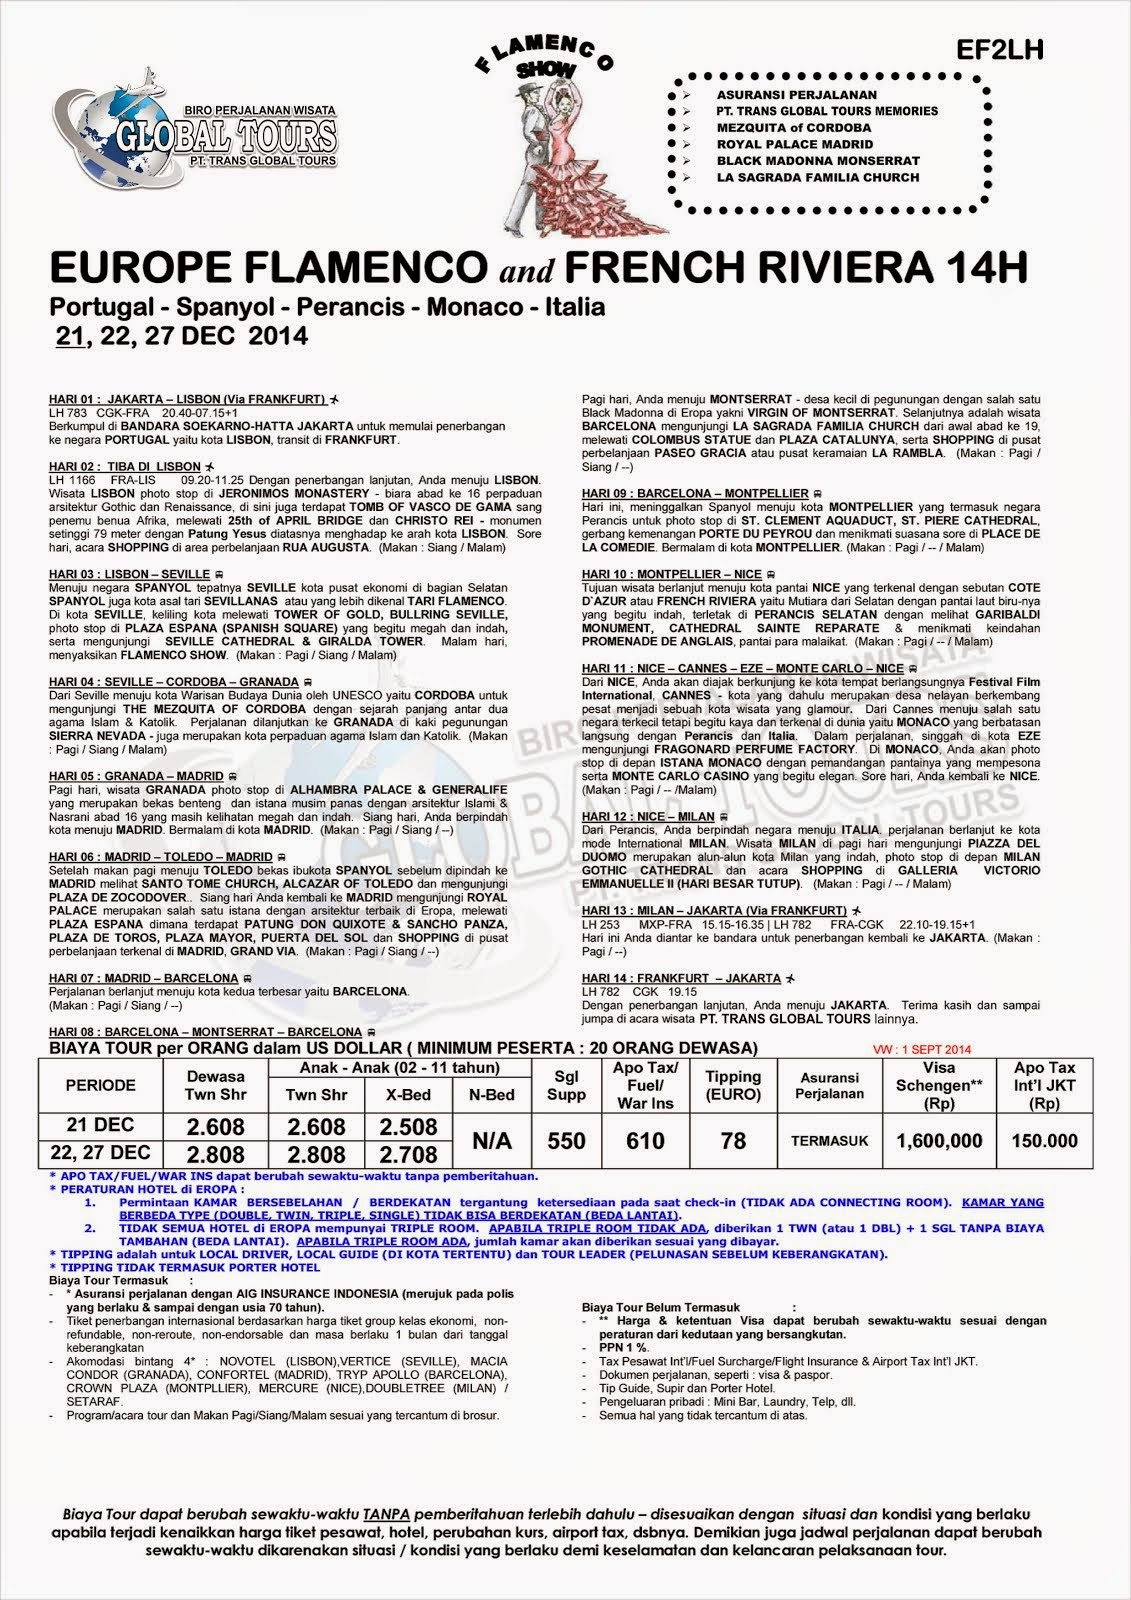 EUROPE FLAMENCO AND FRENCH RIVIERA